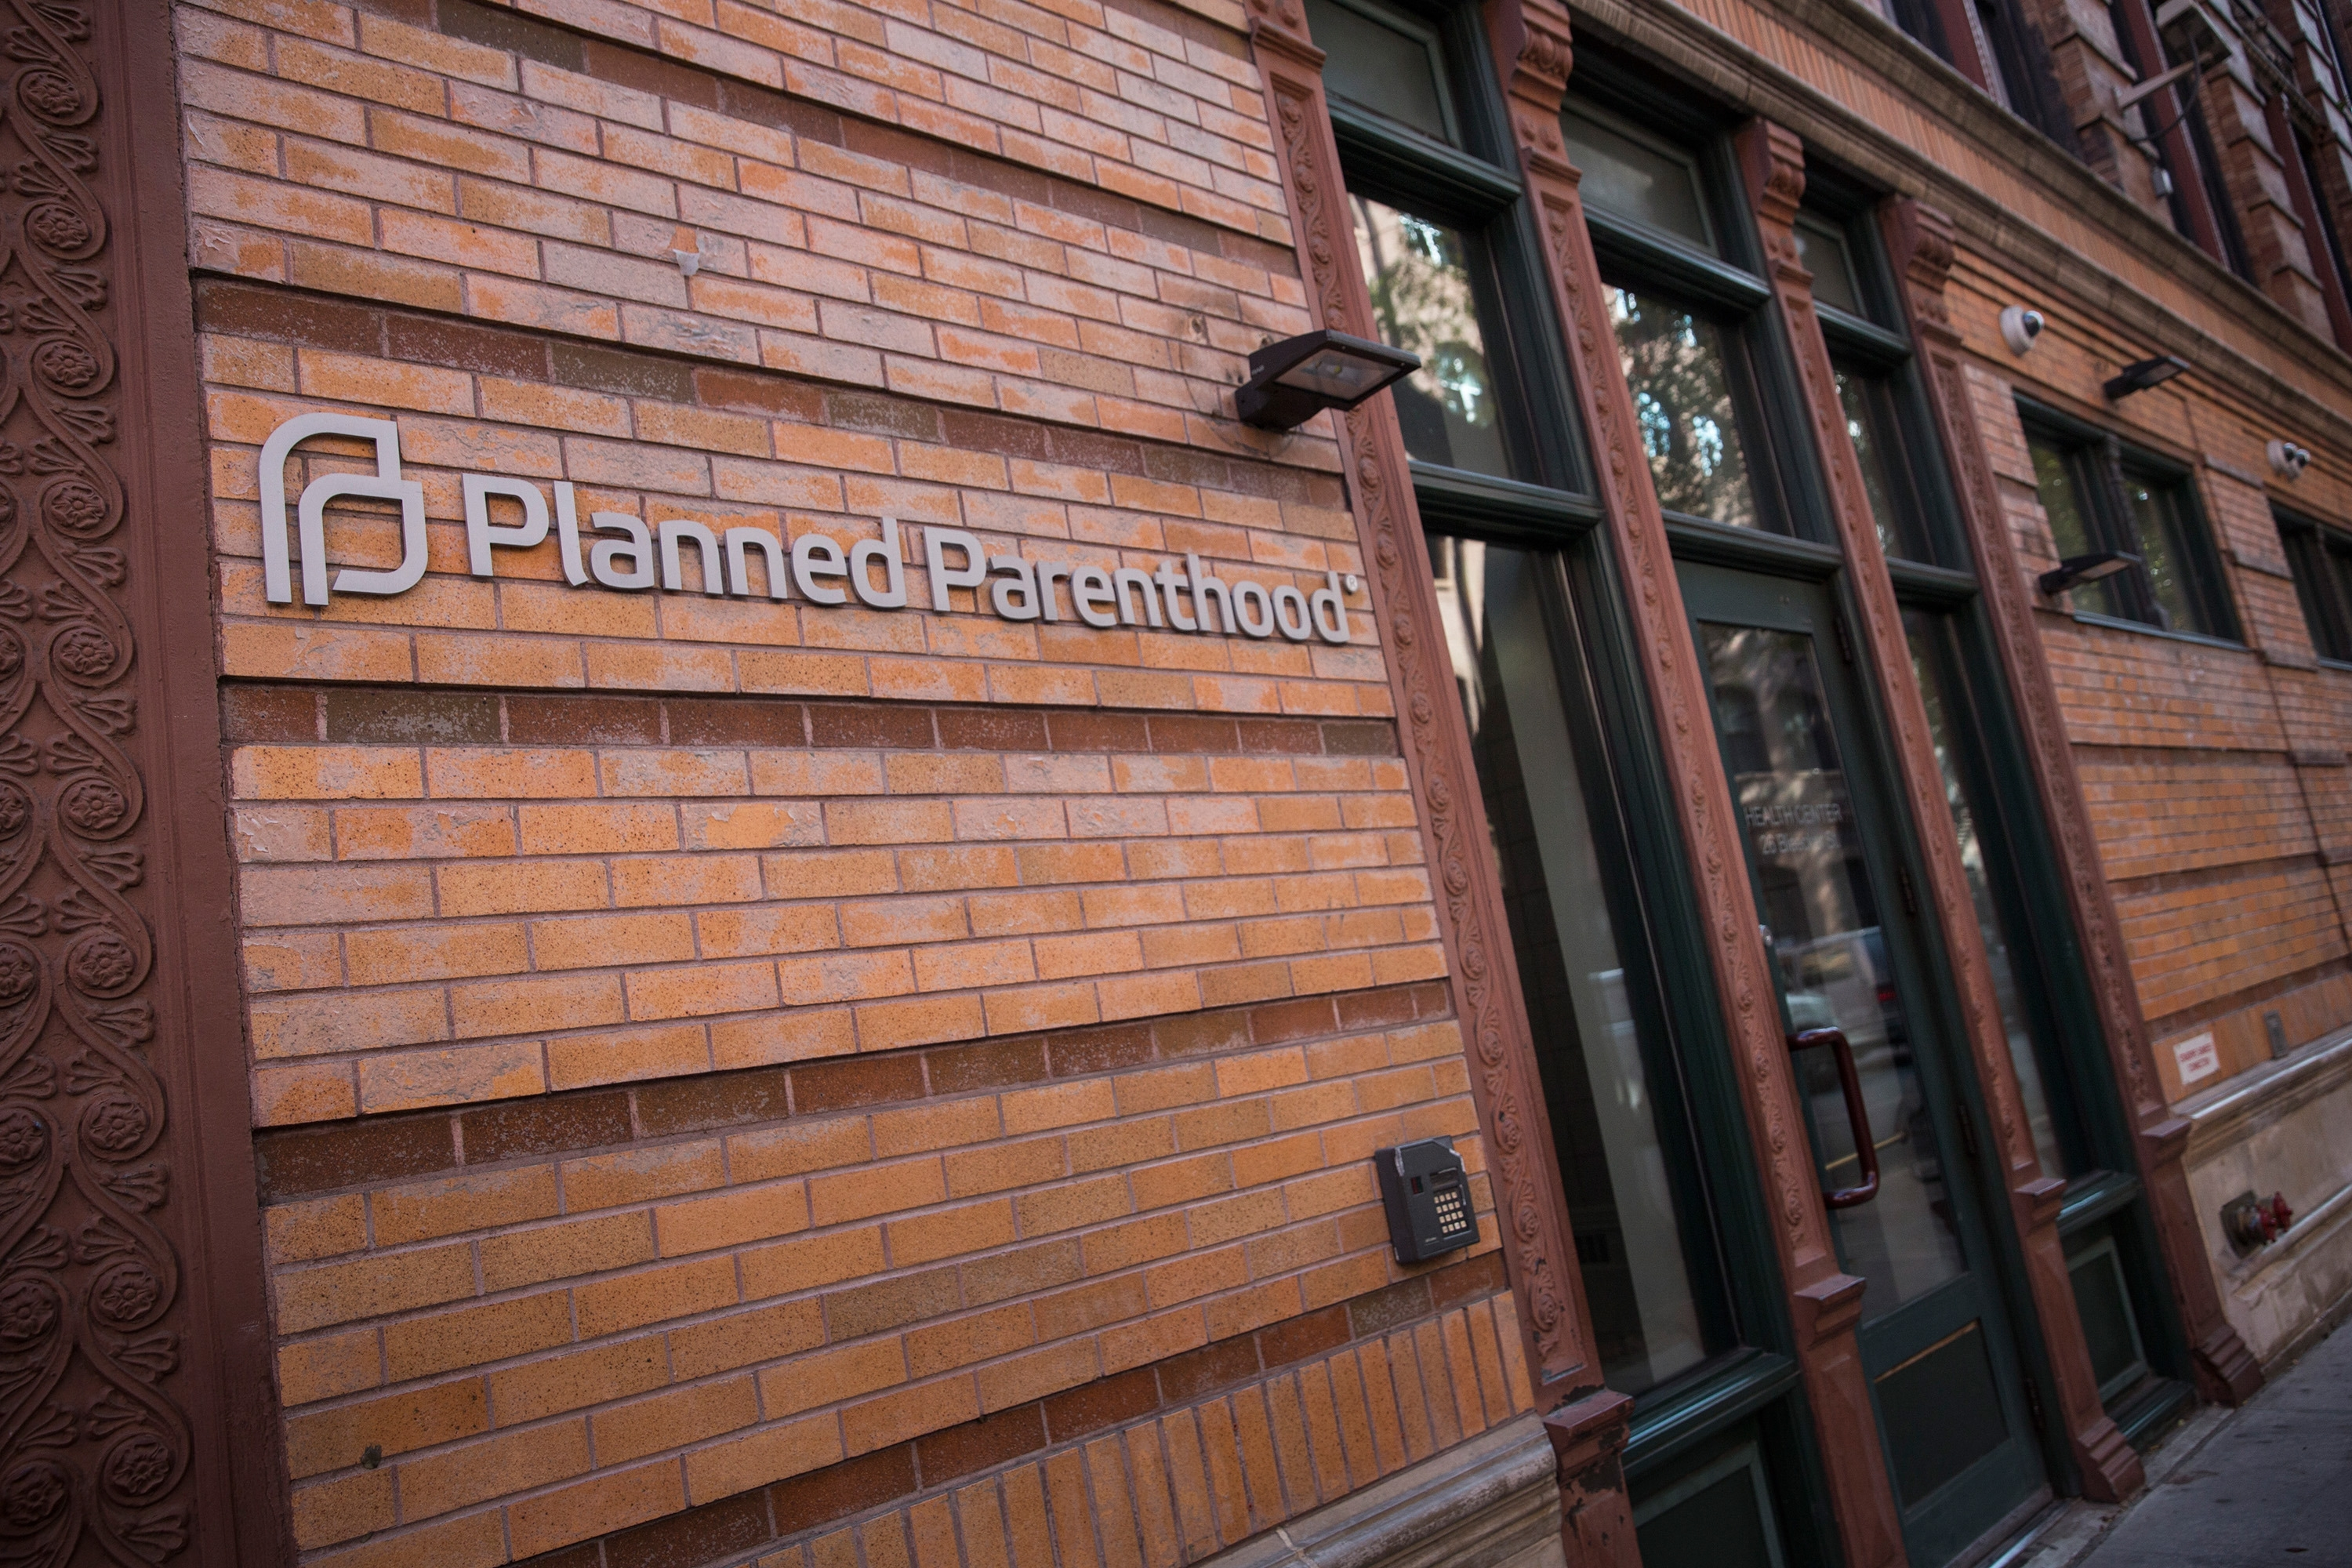 NEW YORK, NY - NOVEMBER 30:  A Planned Parenthood office is seen on November 30, 2015 in New York City. A gunman killed three people November 27, including a police officer, at a Planned Parenthood in Colorado Springs, Colorado. (Photo by Andrew Burton/Getty Images)